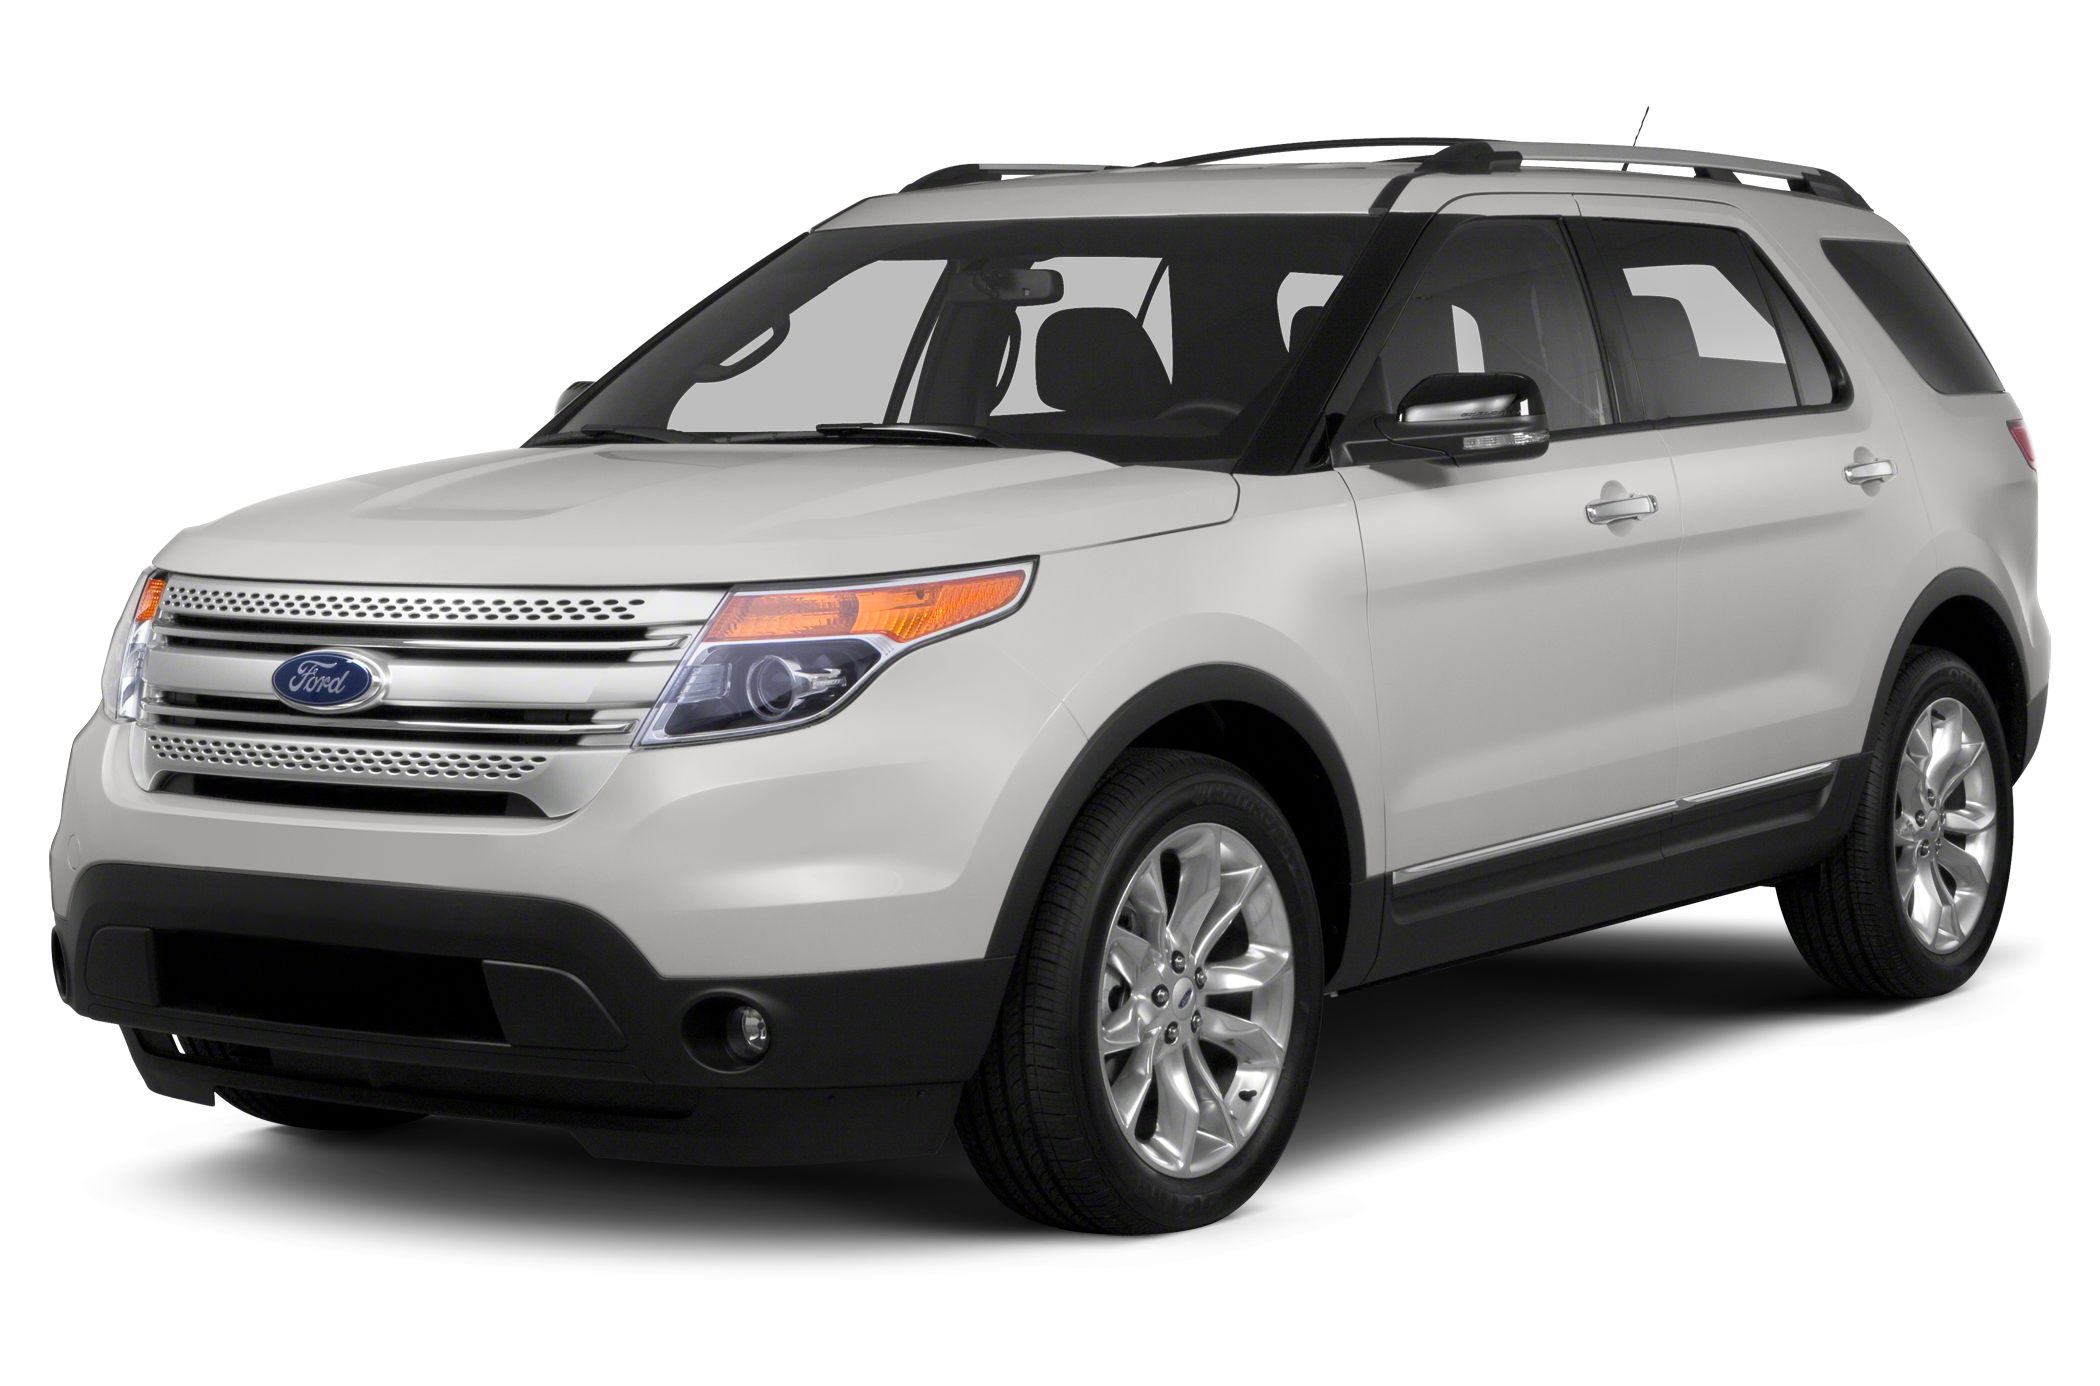 2013 Ford Explorer XLT Visit Best Auto Group online at bronxbestautocom to see more pictures of t